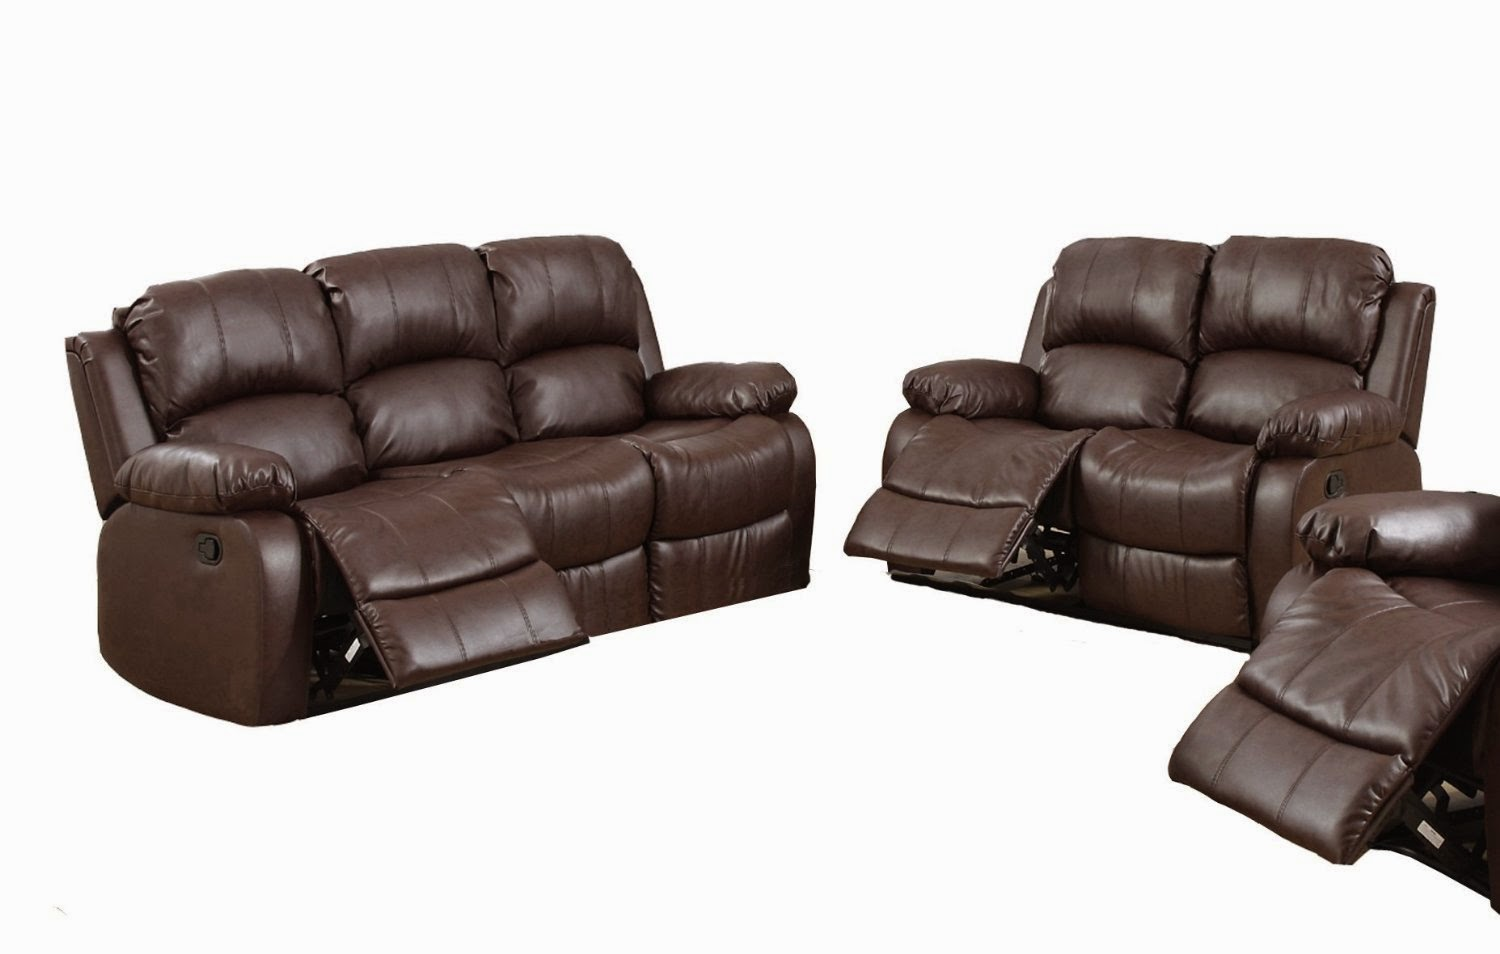 Cheap reclining sofa and loveseat sets april 2015 Reclining leather sofa and loveseat